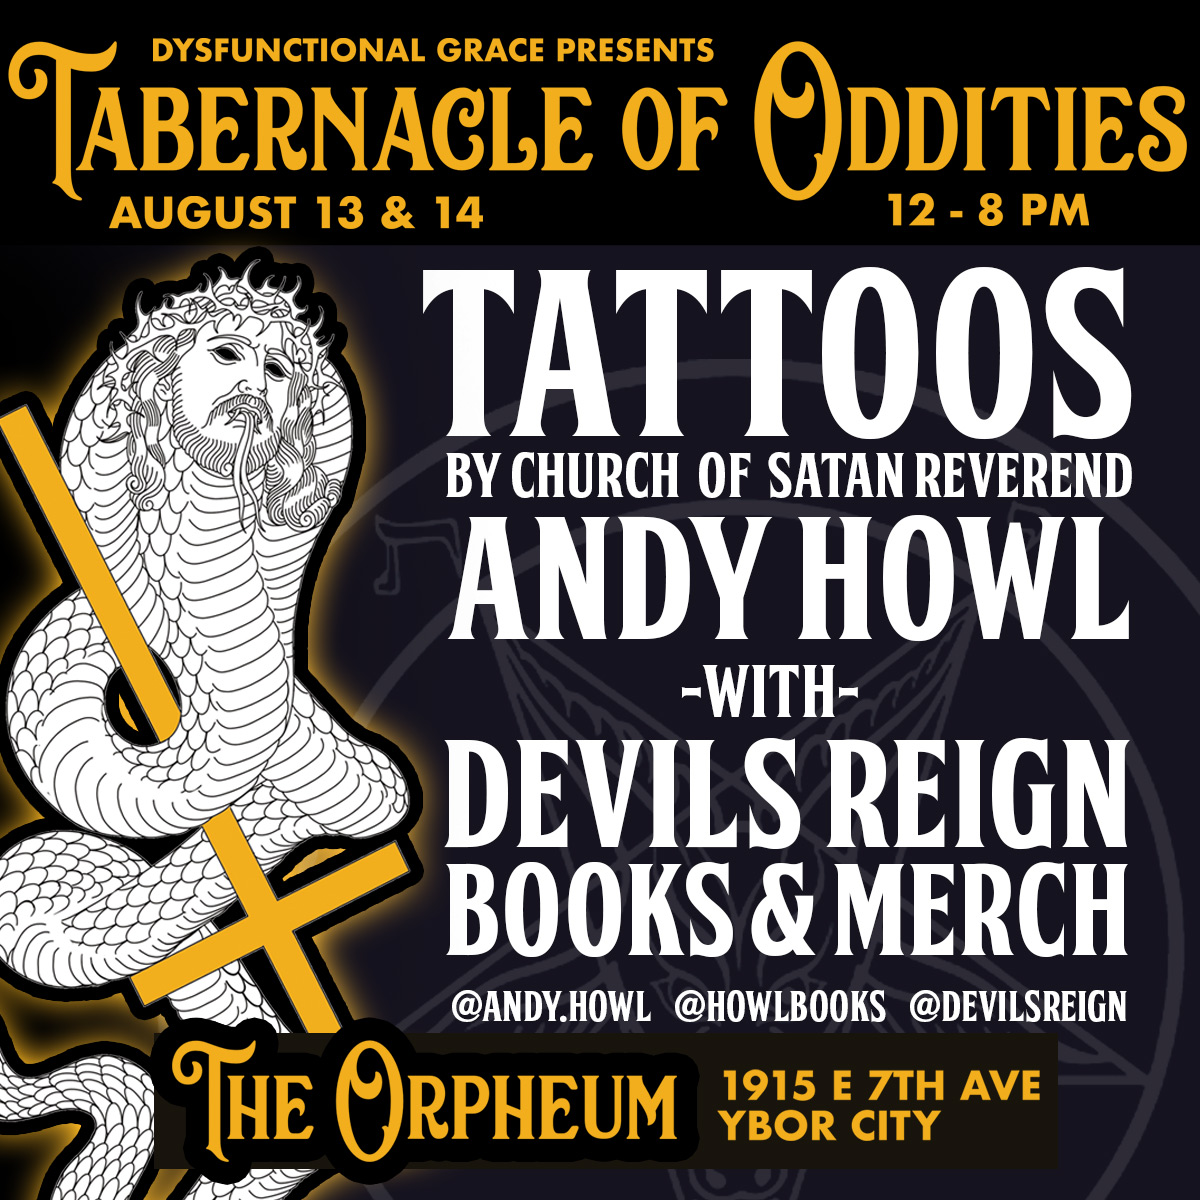 Reverend Andy Howl at the Tabernacle of Oddities expo in Ybor City, Tampa